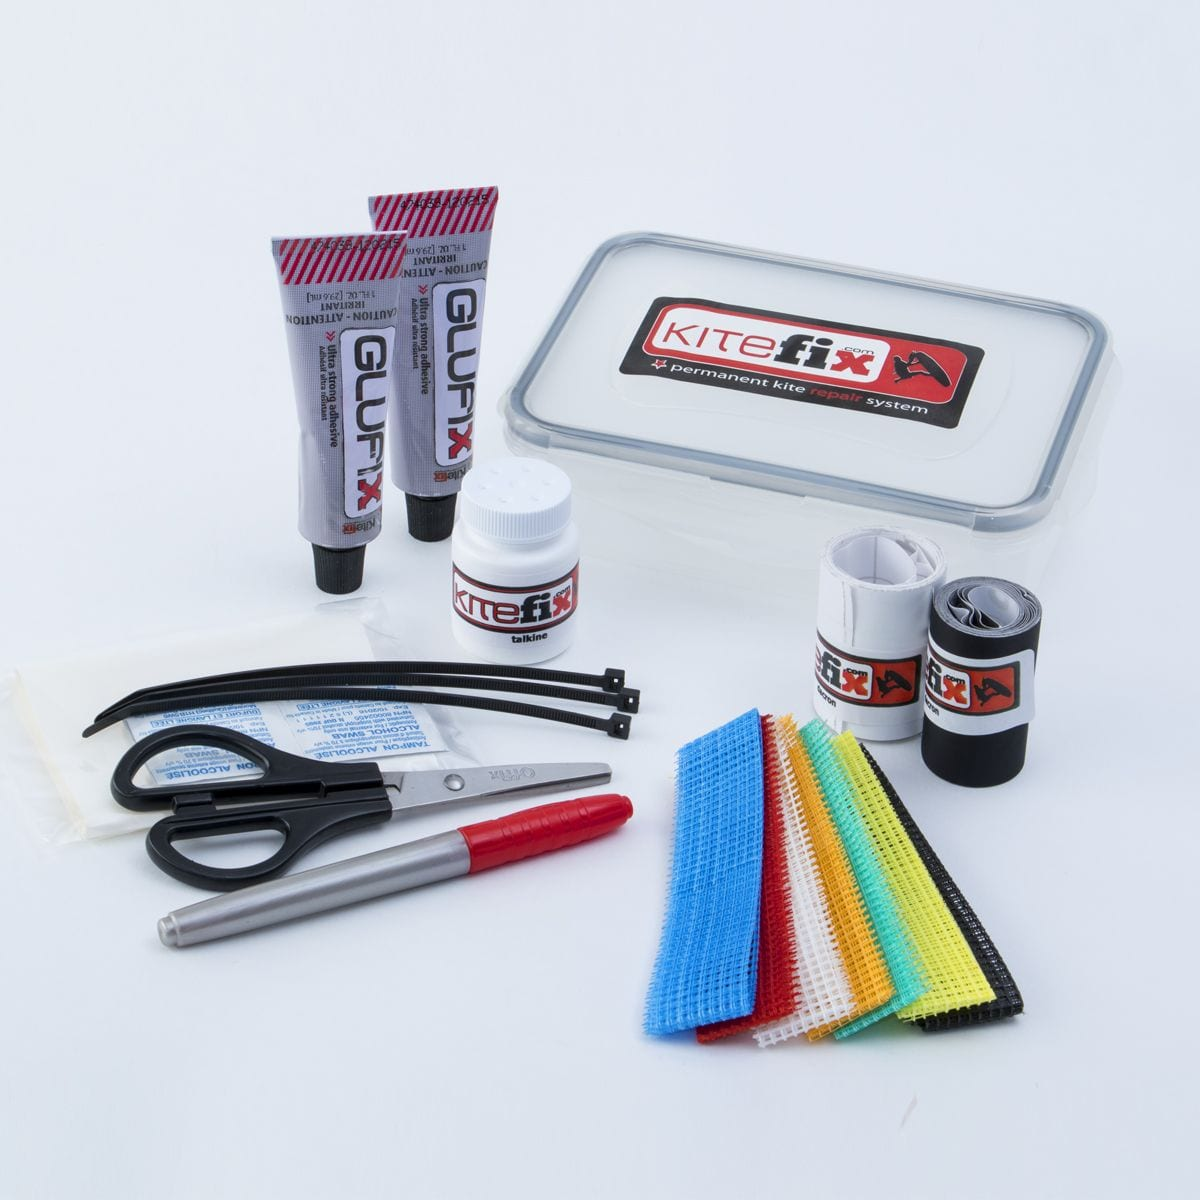 Kitefix Complete Repair Kit for traveling or DIY